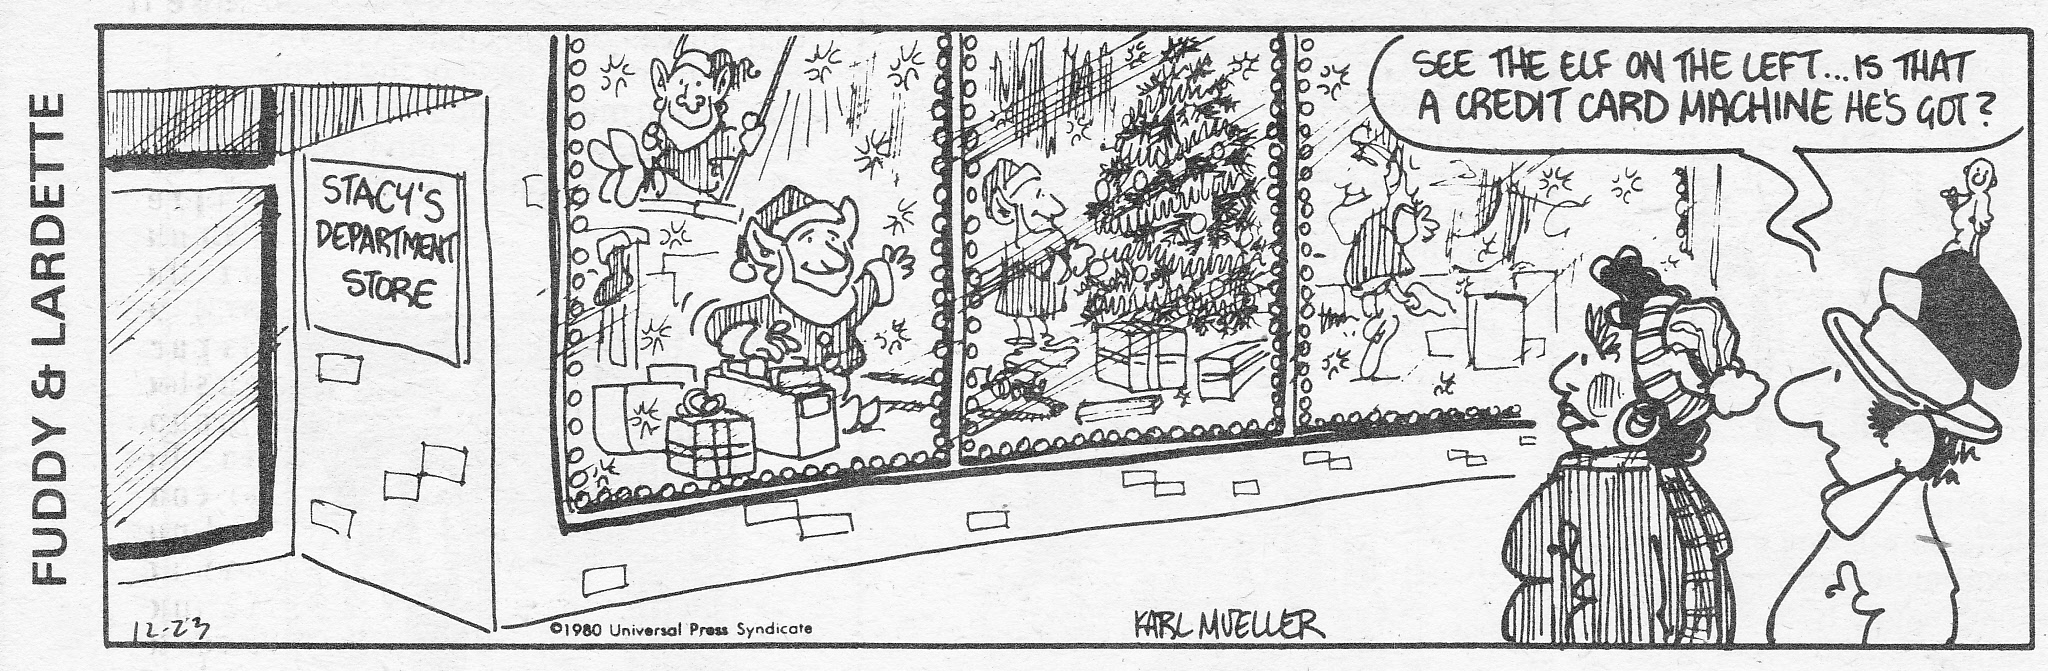 C:\Users\Robert\Documents\CARTOONING ILLUSTRATION ANIMATION\IMAGE CARTOON\IMAGE CARTOON F\FUDDY & LARDETTE, Toronto Sun, 23 December 1980.jpg